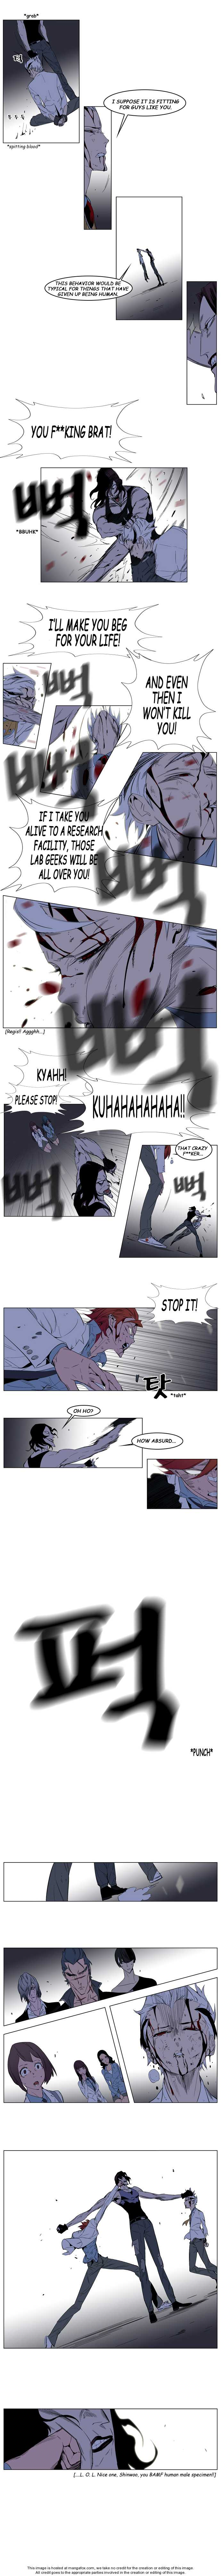 Noblesse 127 Page 3